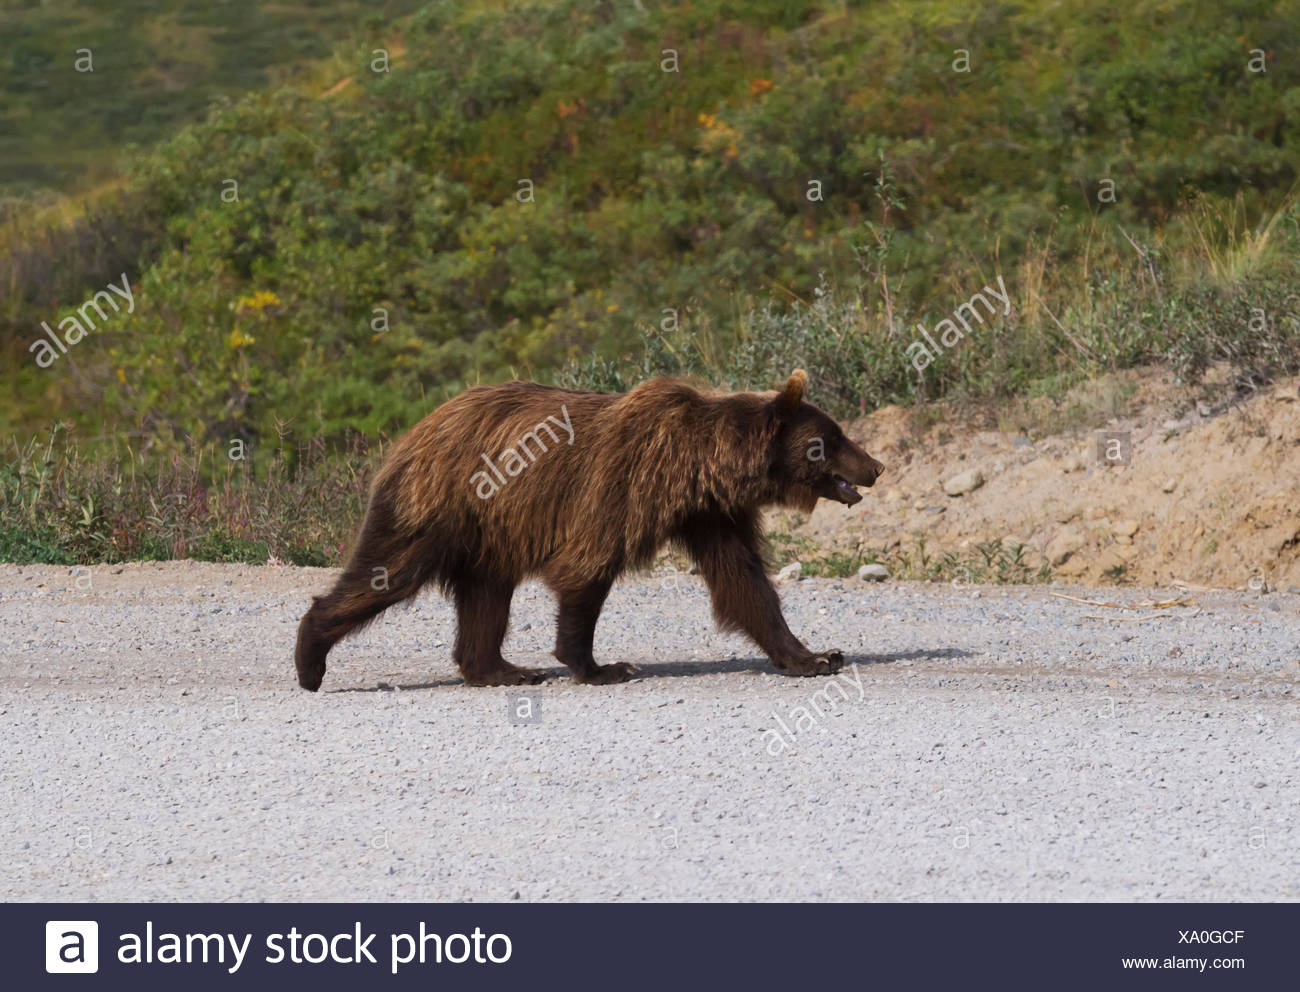 Grizzly bear walking - photo#32